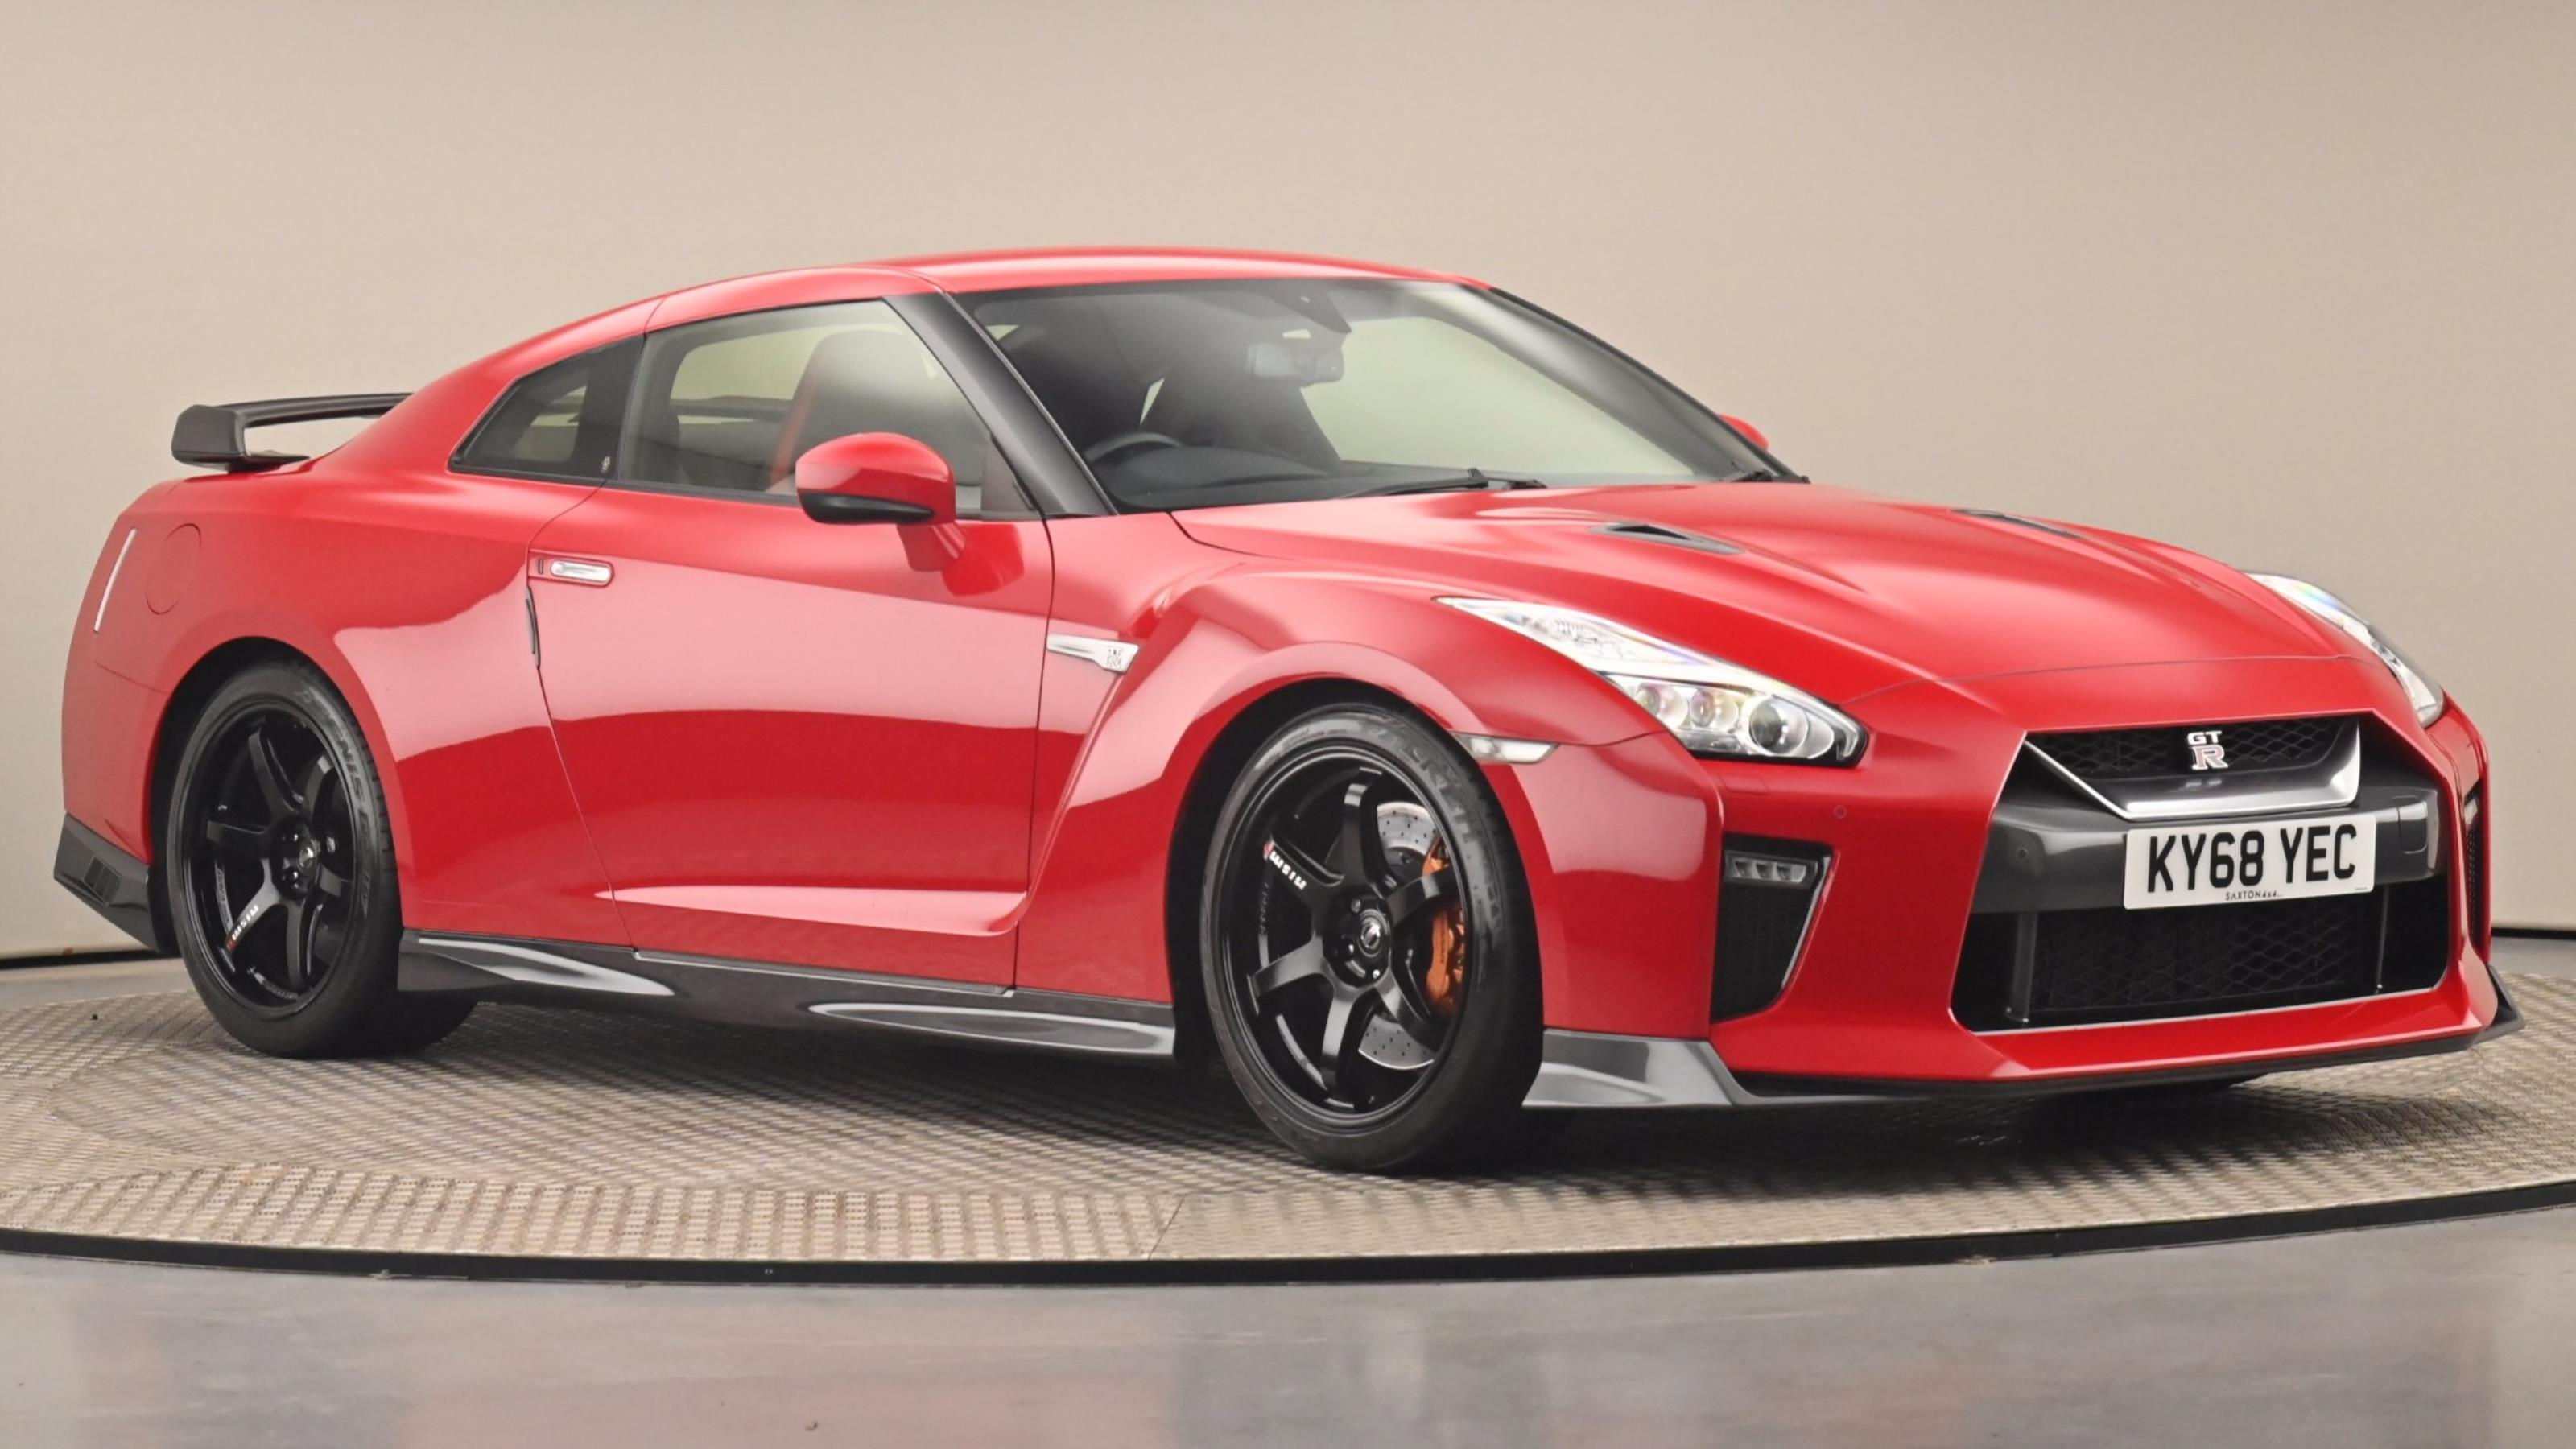 Used 2018 Nissan Gt-r Track Edition S-a RED at Saxton4x4